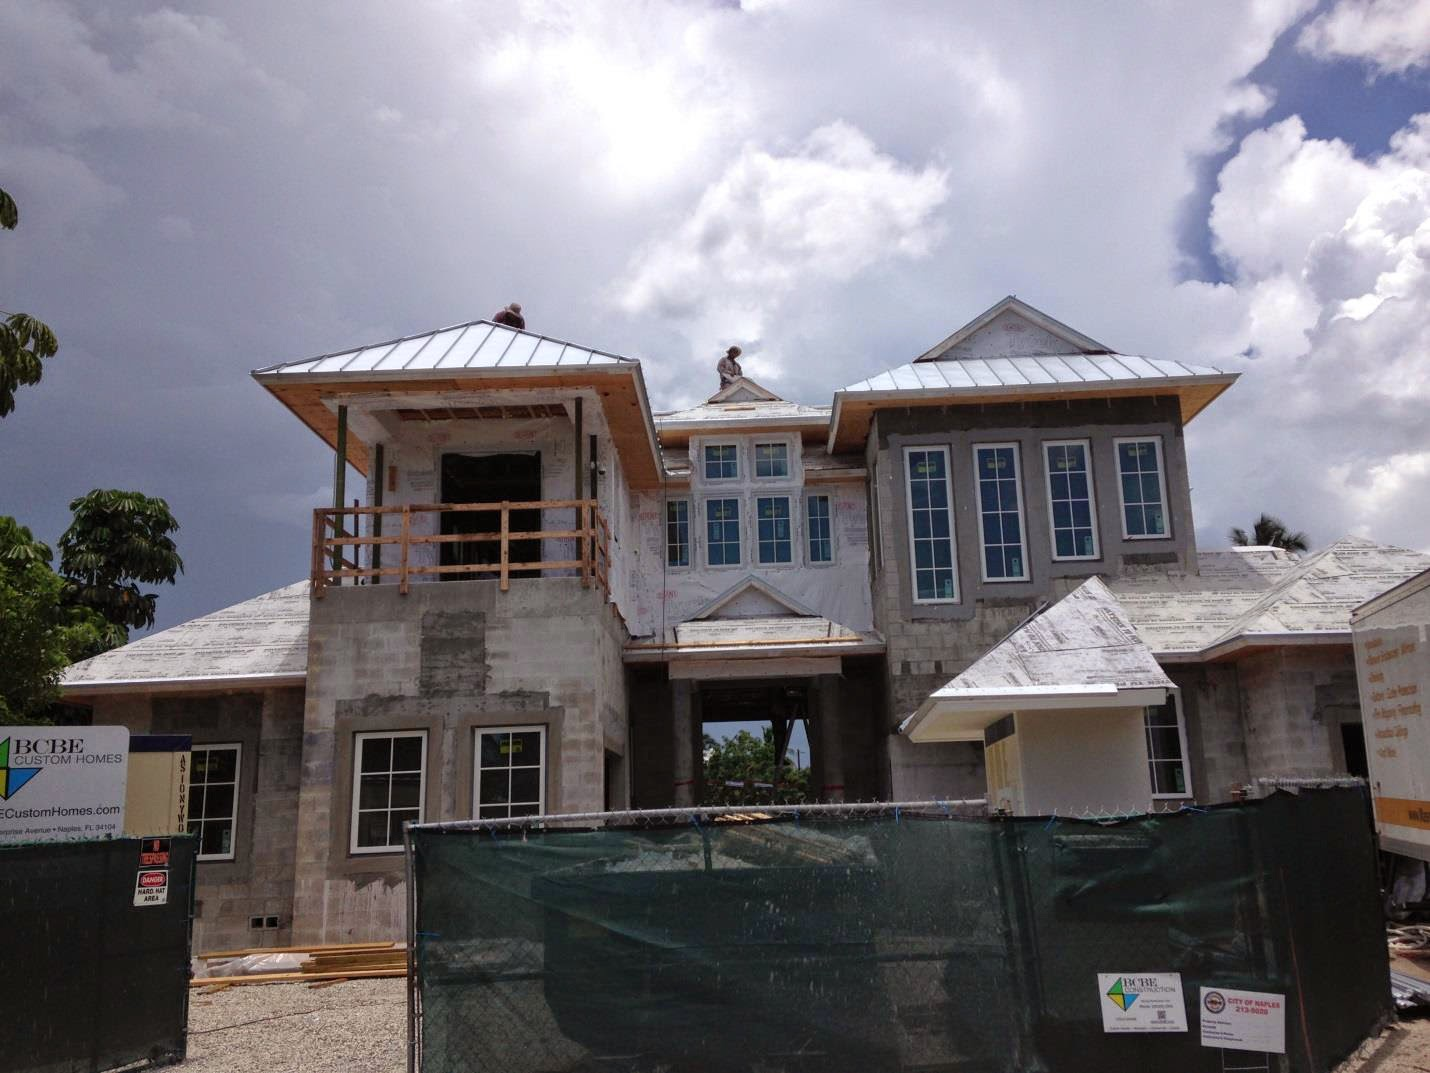 Bcbe construction llc custom homes are booming in sw florida for Southwest custom homes